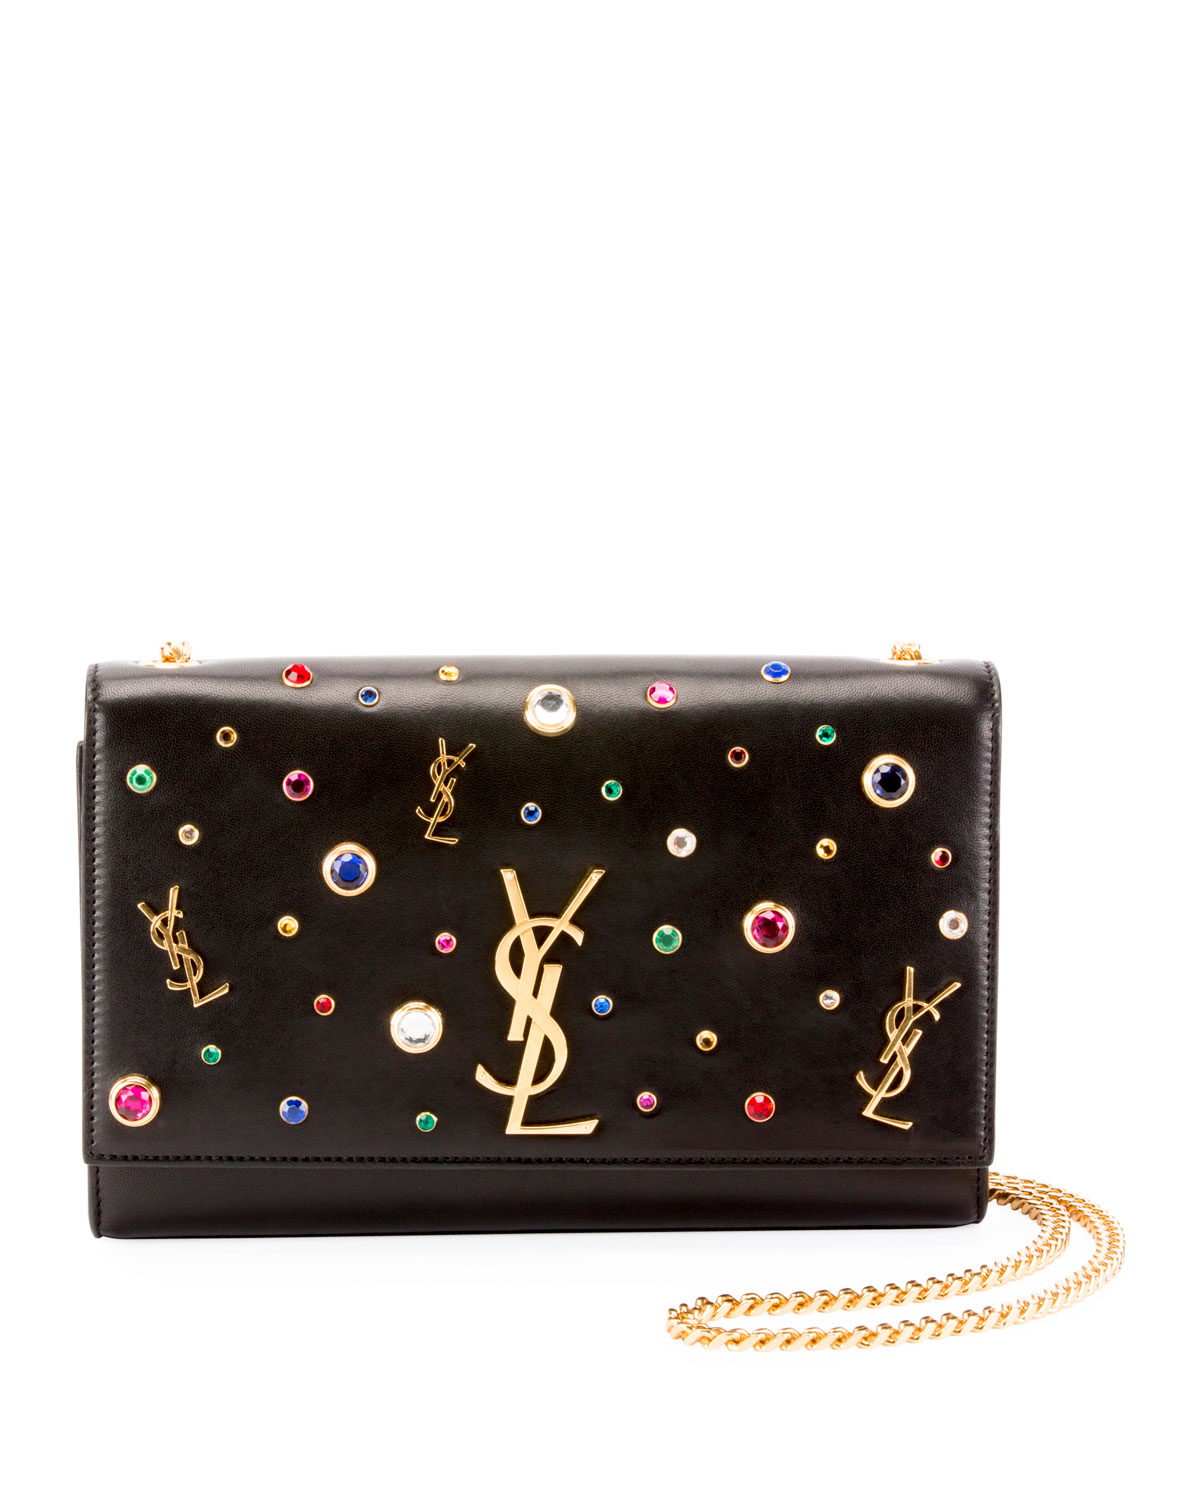 Saint Laurent Kate Monogram Ysl Medium Jewel Stud Chain